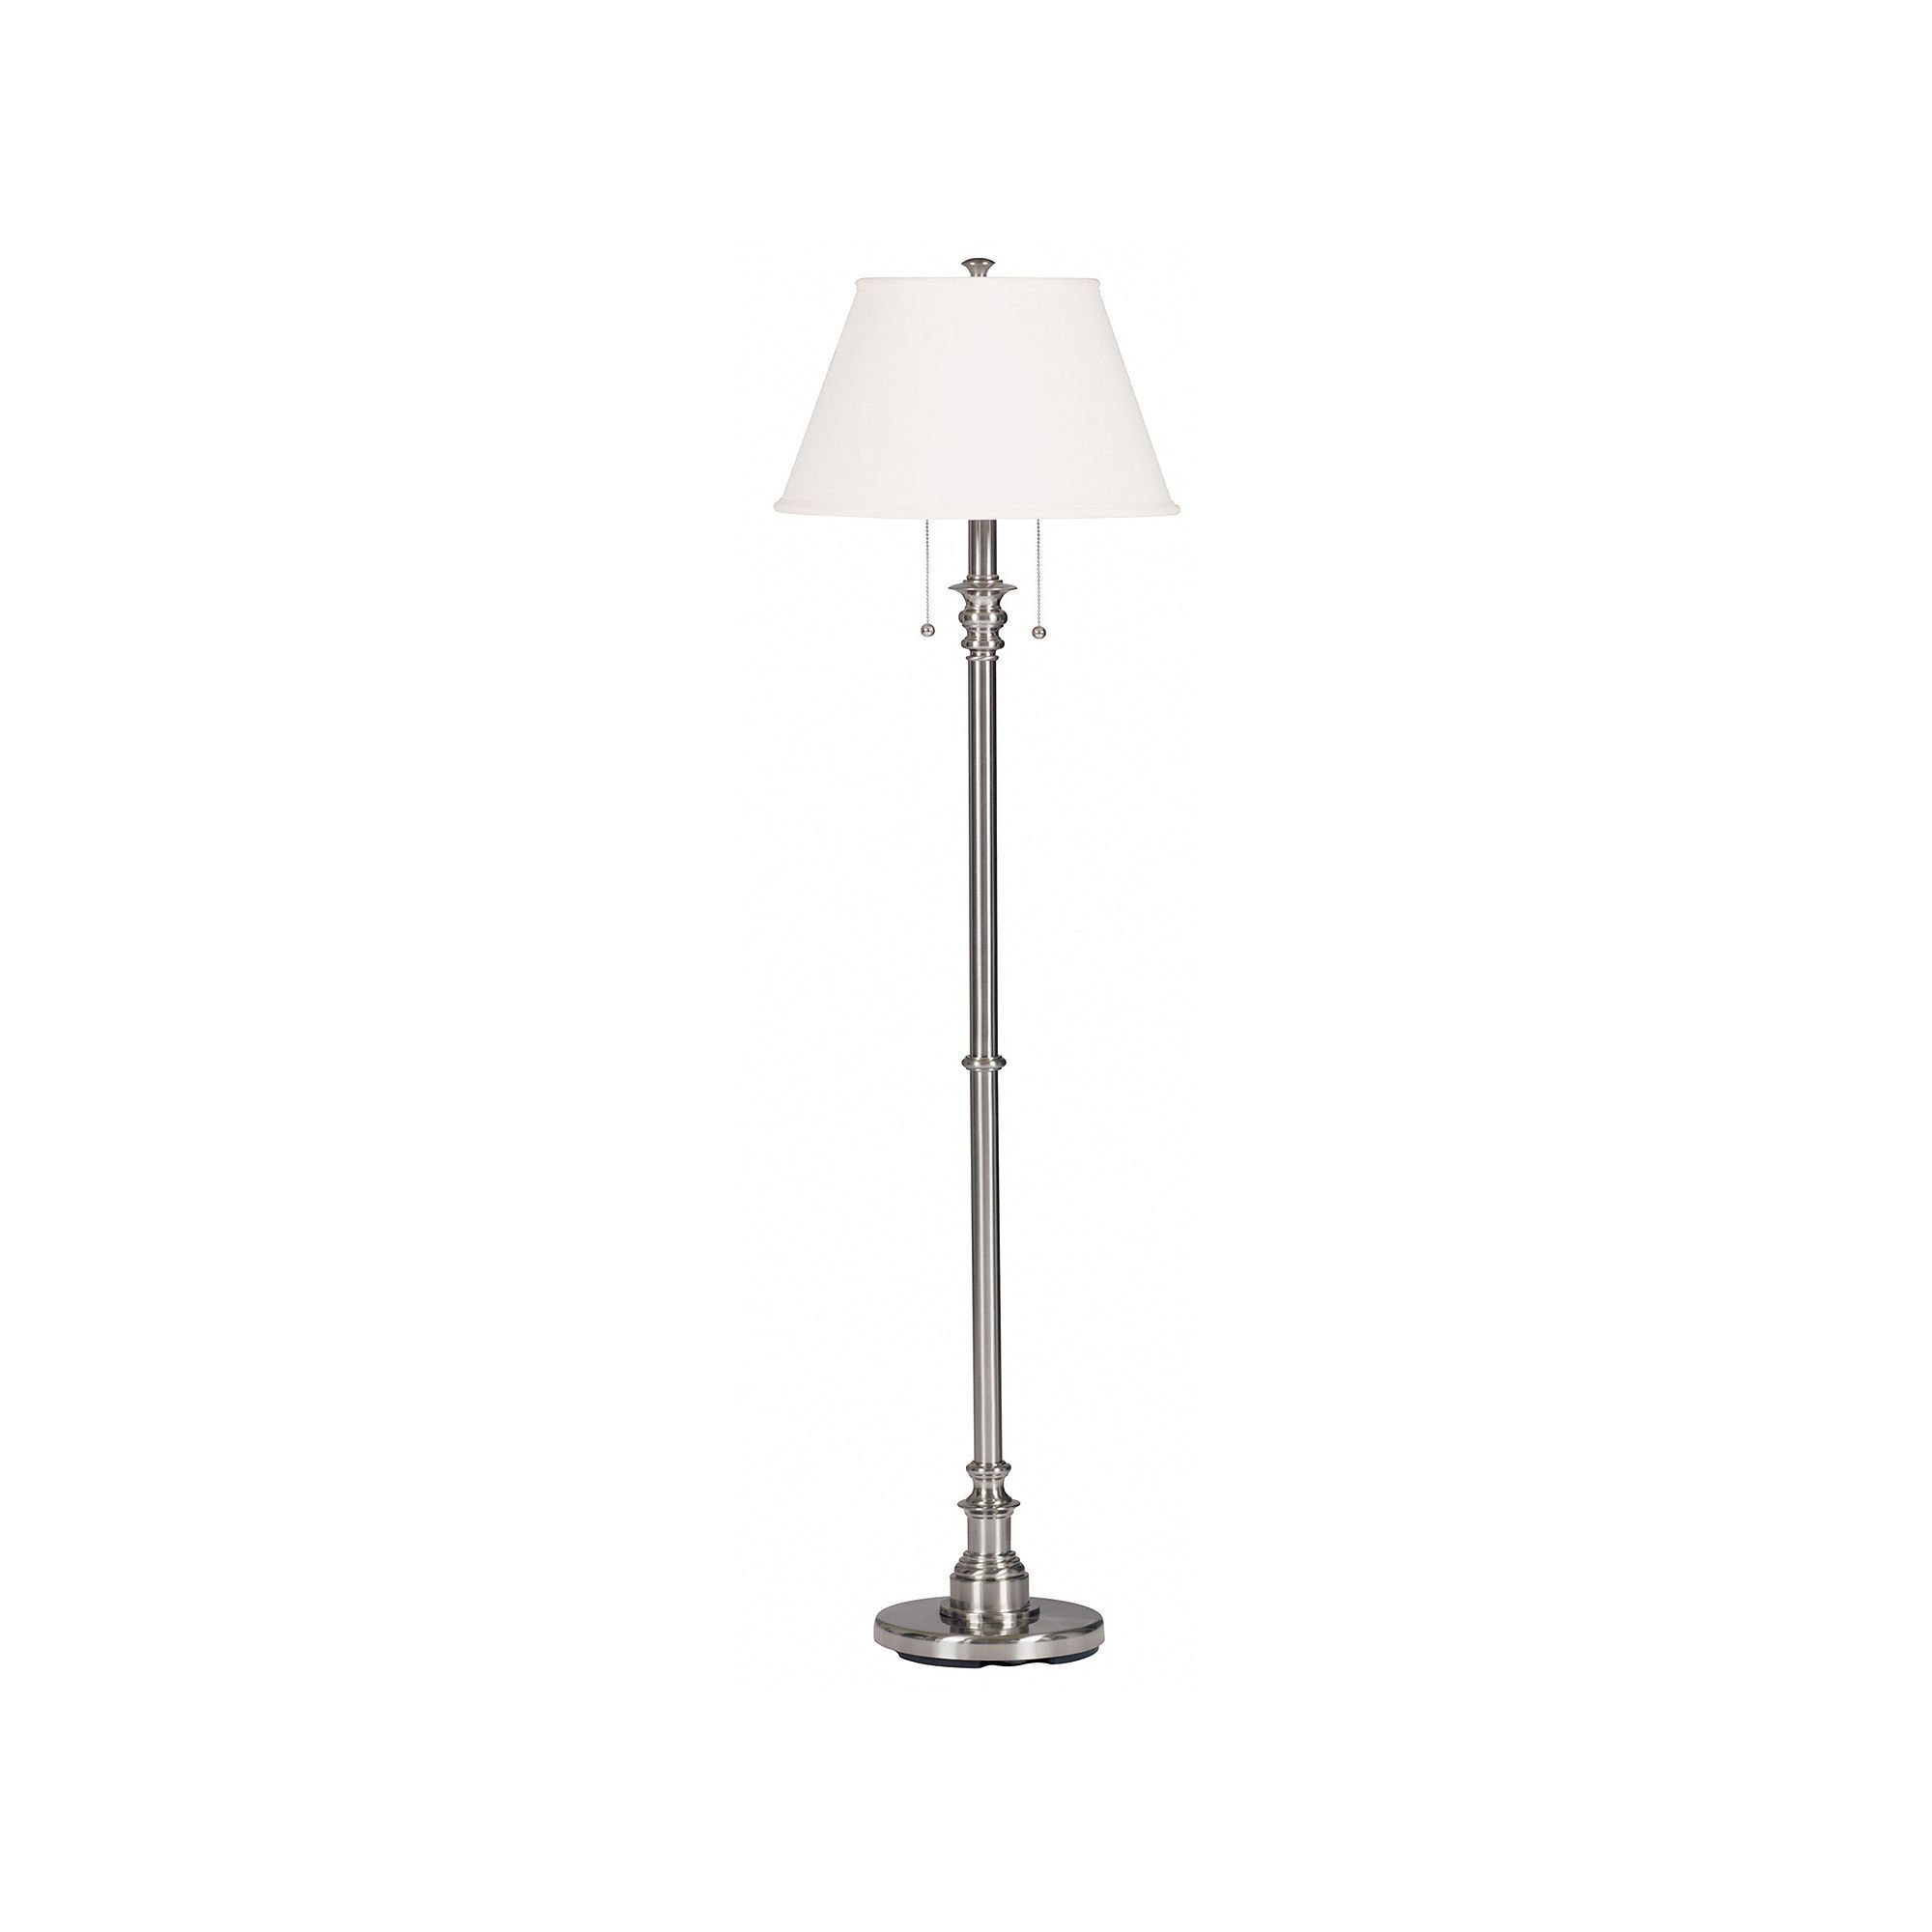 Kohls Floor Lamps New Kenroy Home Spyglass Floor Lamp  Floor Lamp Inspiration